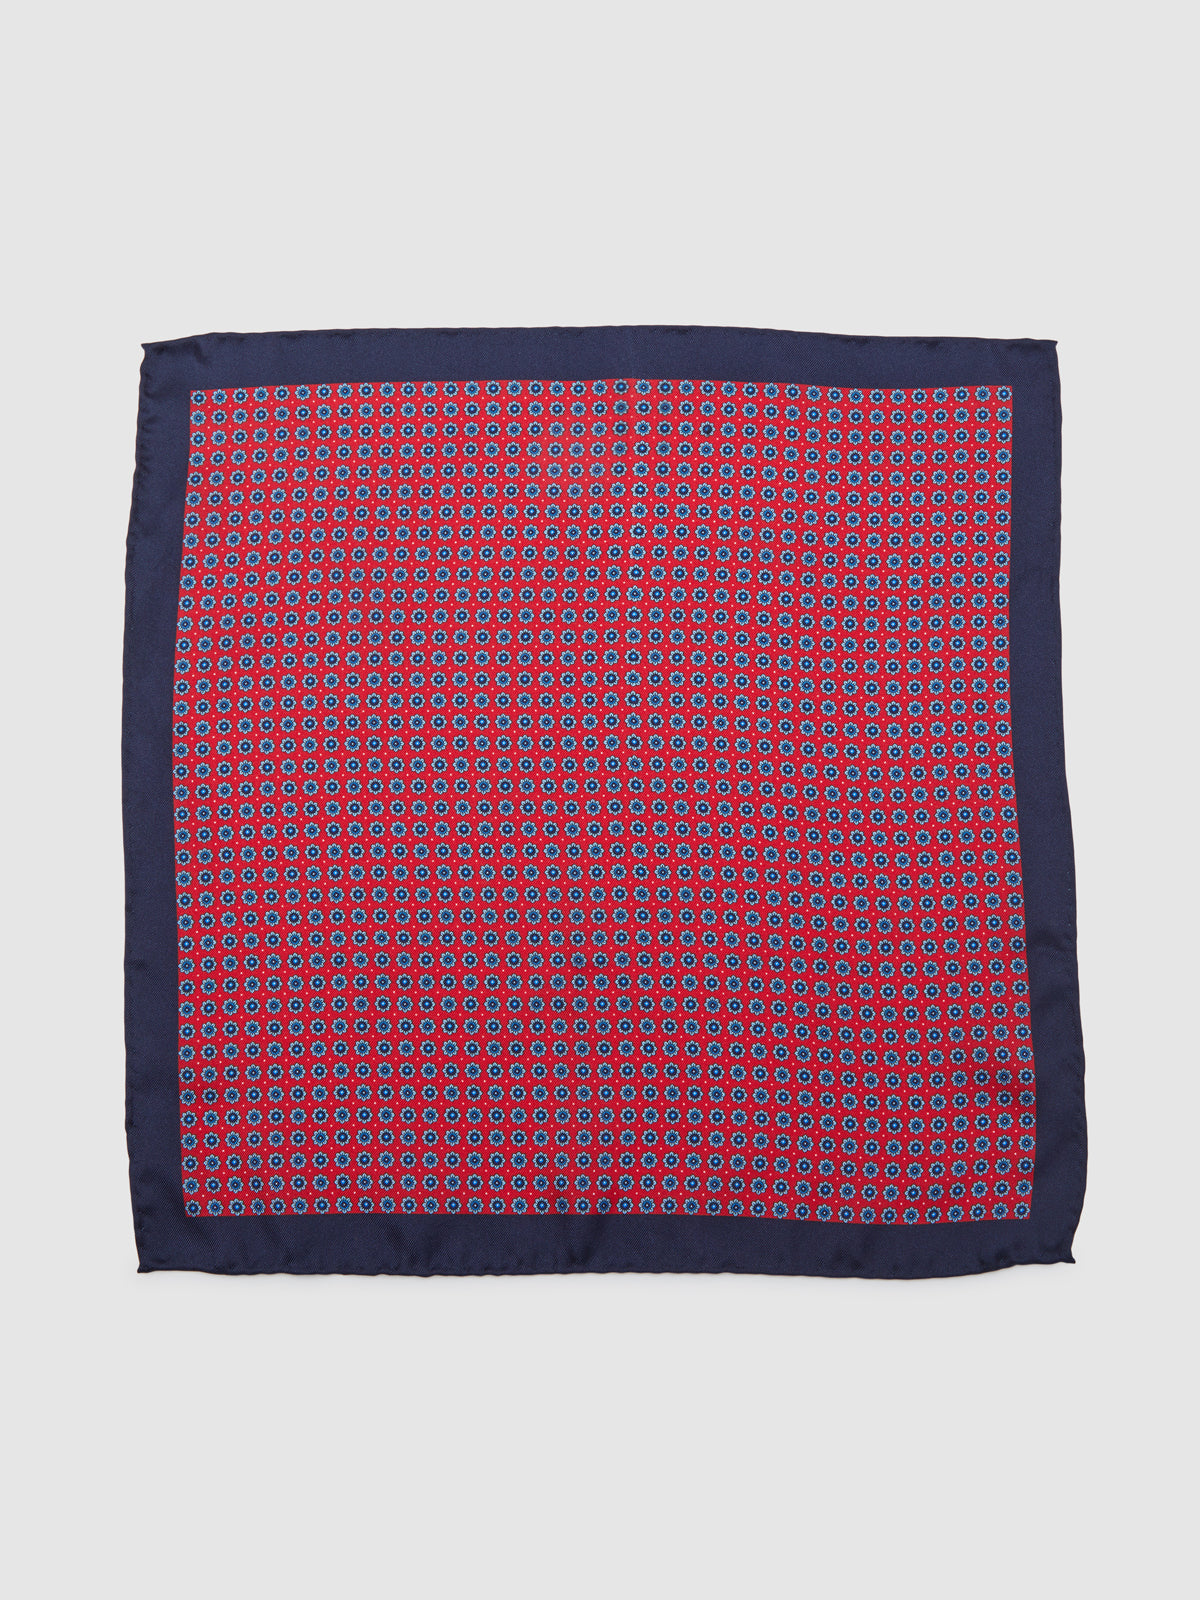 NAUTICAL FLORAL POCKET SQUARE RED/NAVY